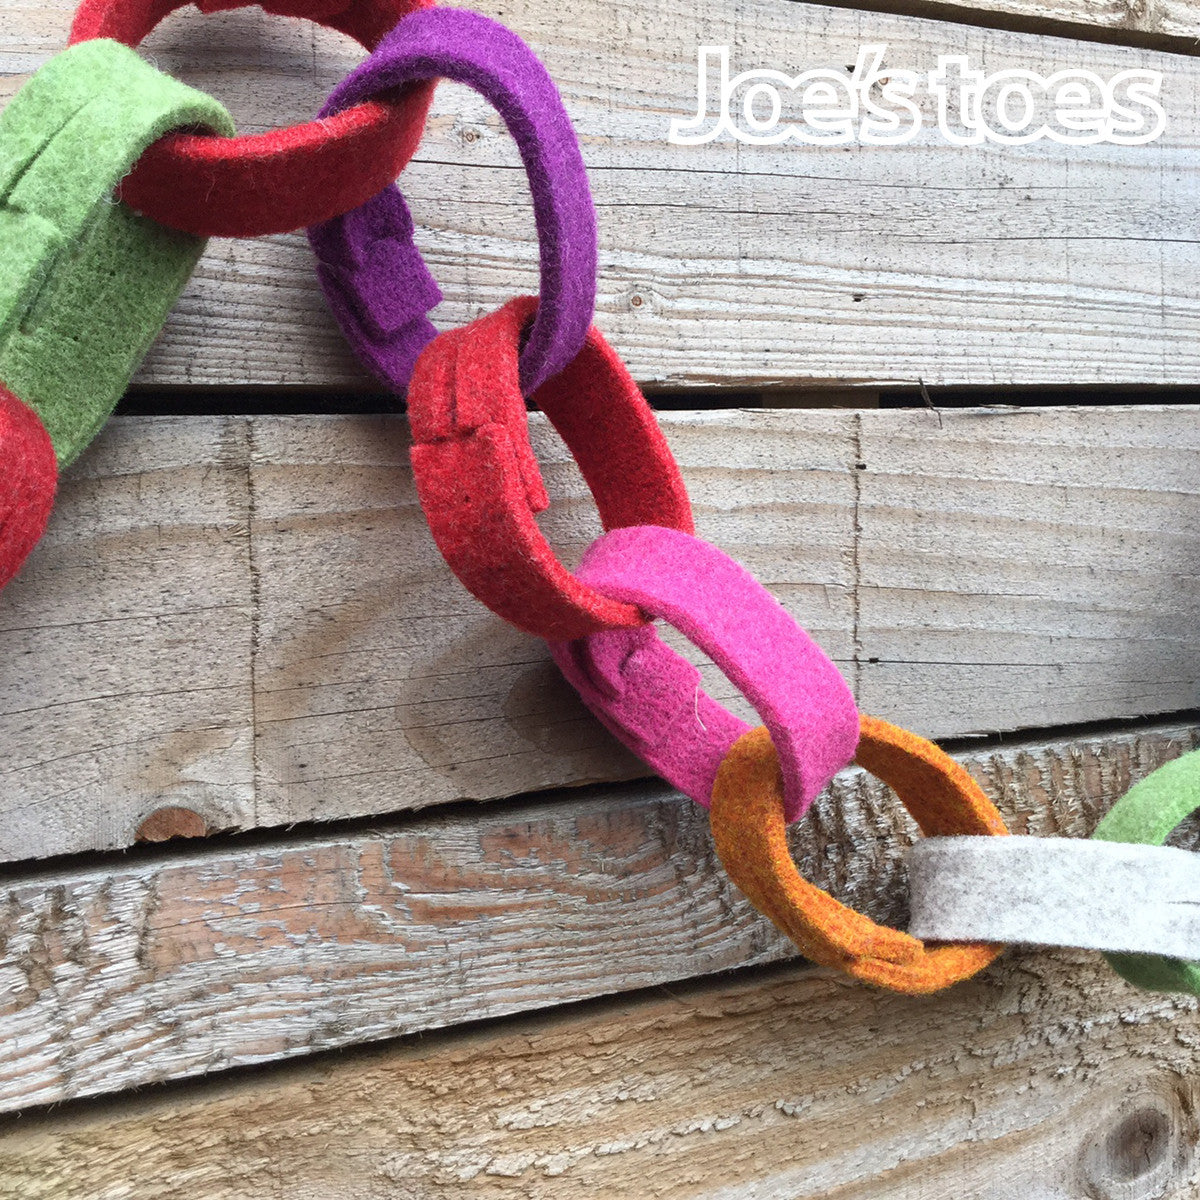 joes toes felt paper chains close up - Christmas Chain Decorations